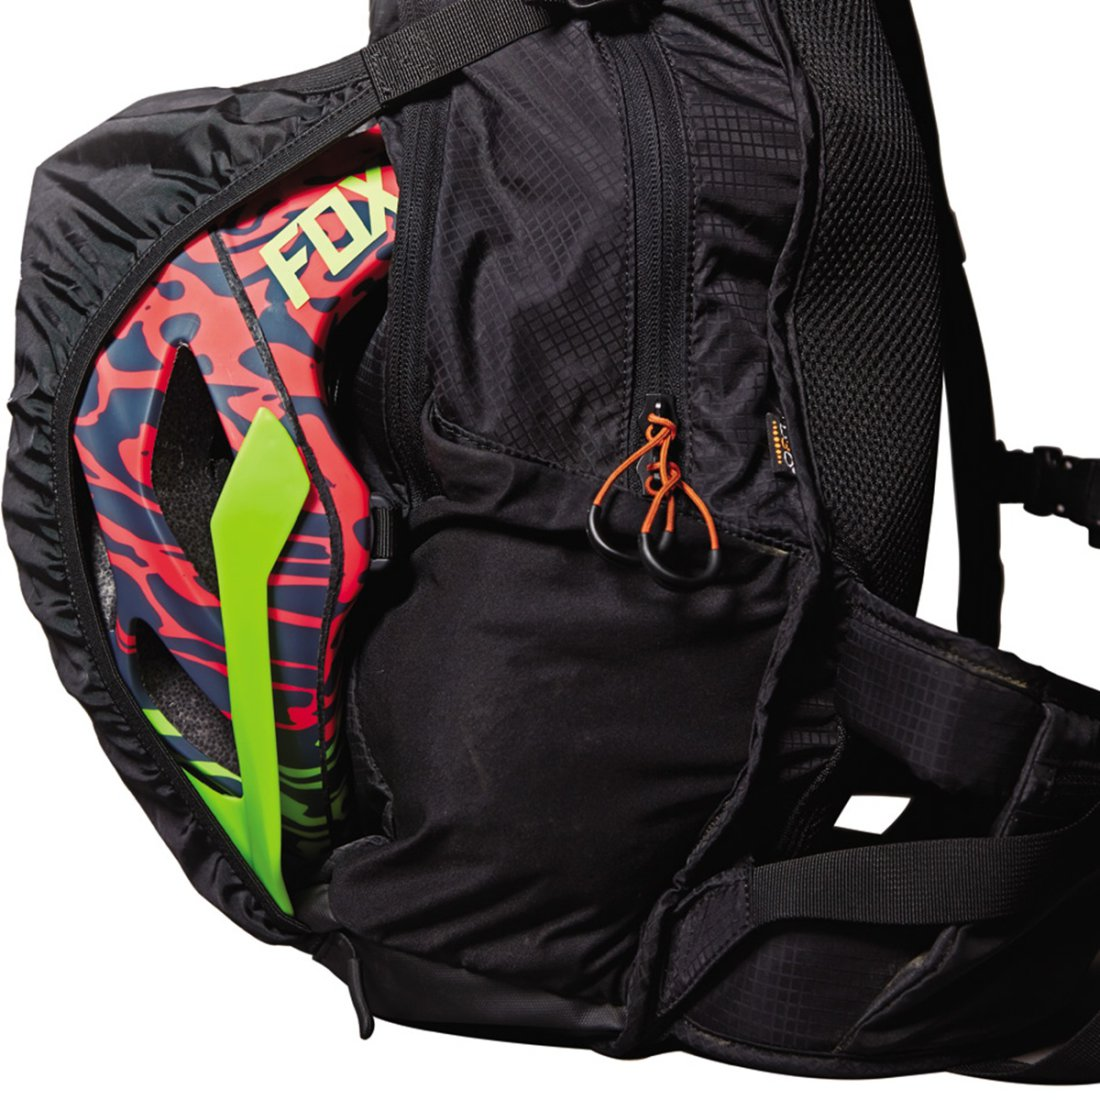 Sac Shoei Racing Bag Unica Zzdg862DI